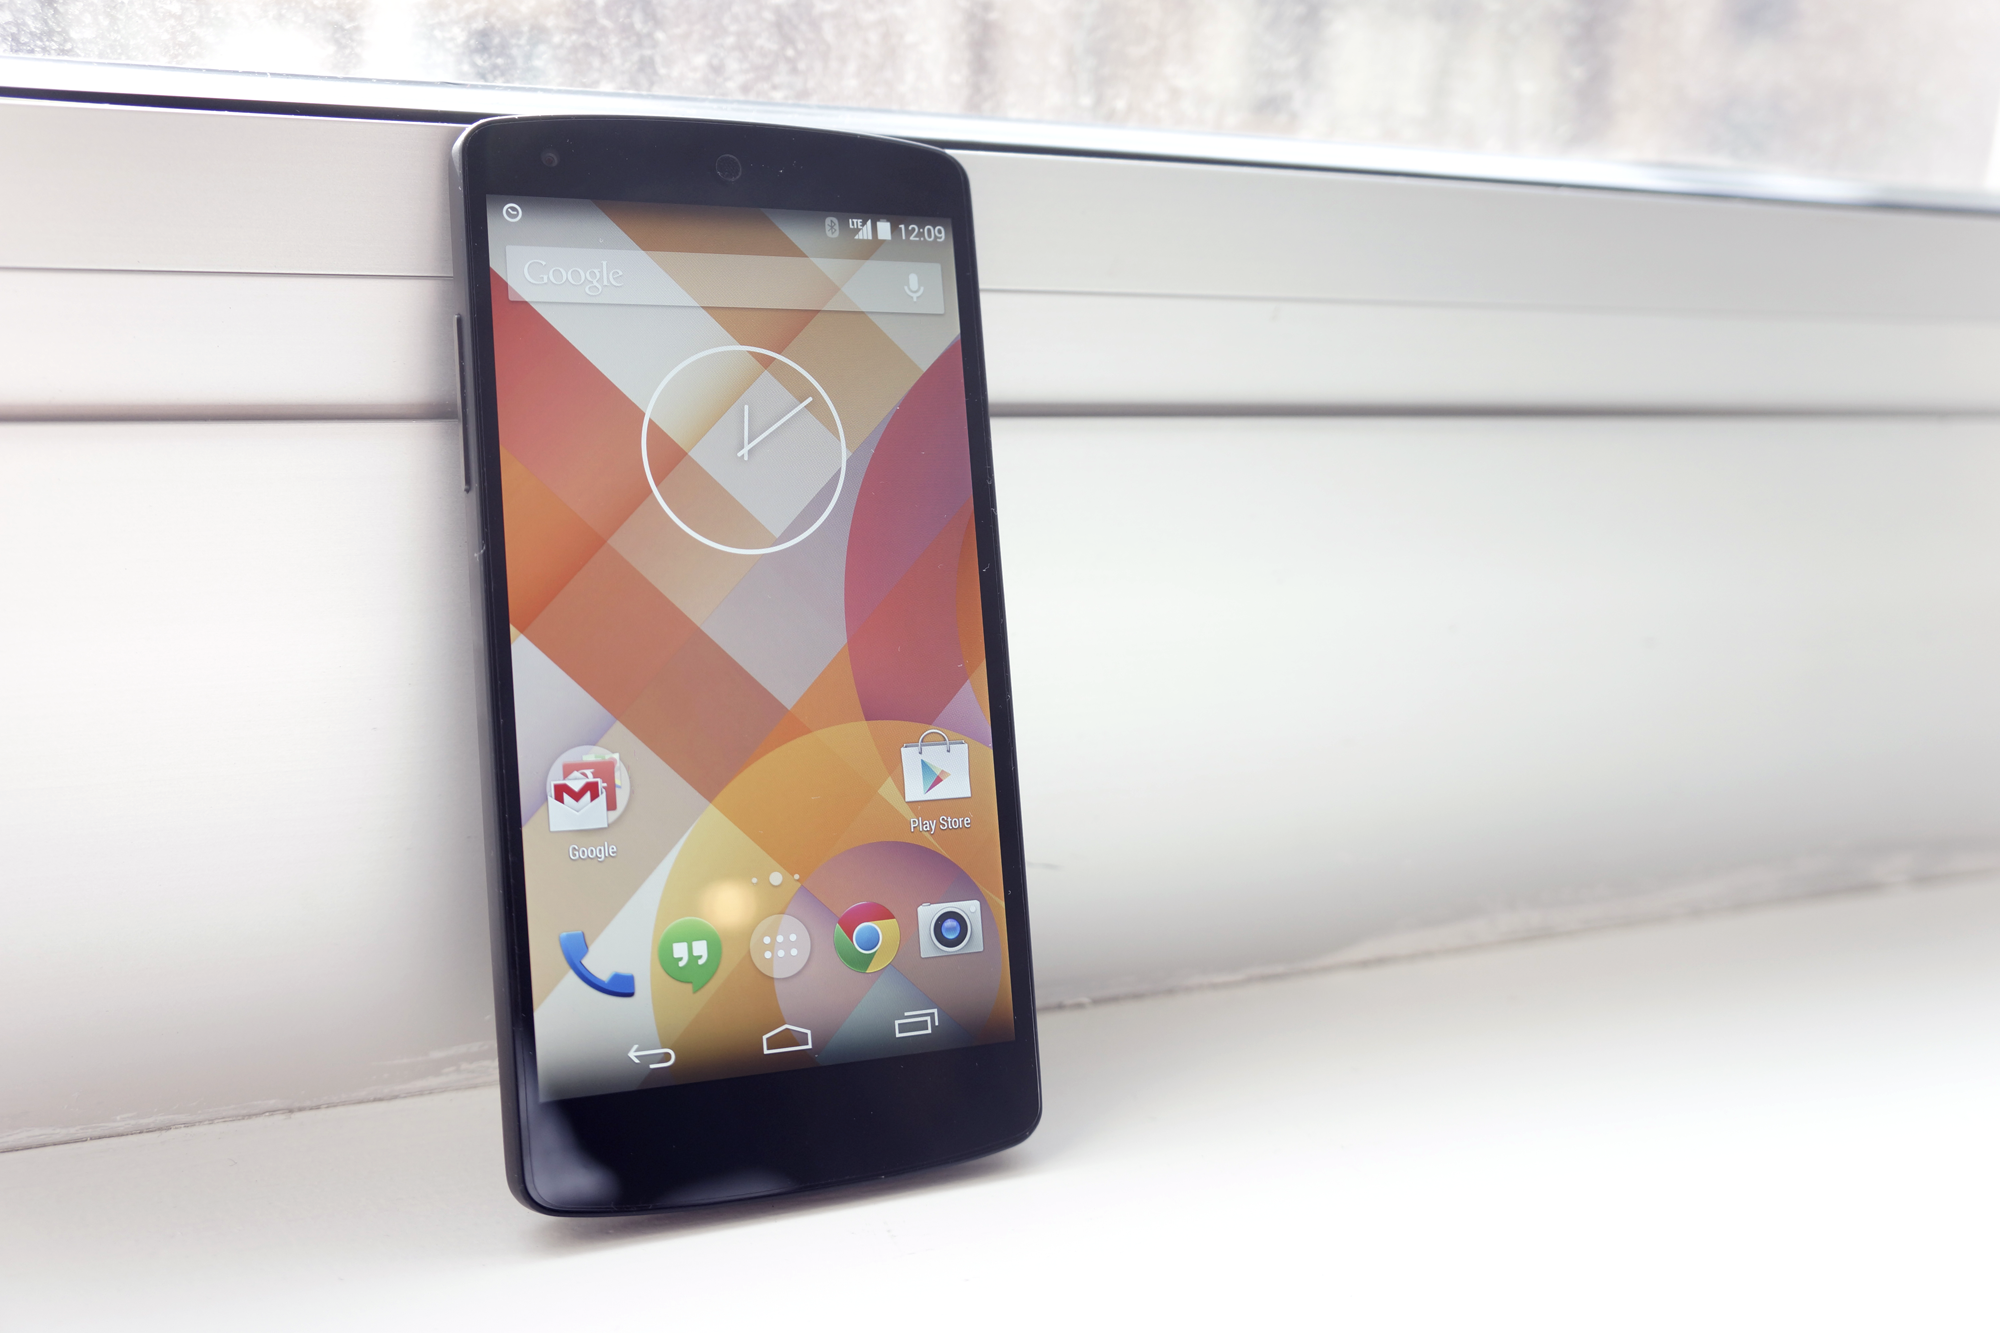 RIP: The Nexus 5 isn't getting Android 7 0 Nougat, let's say